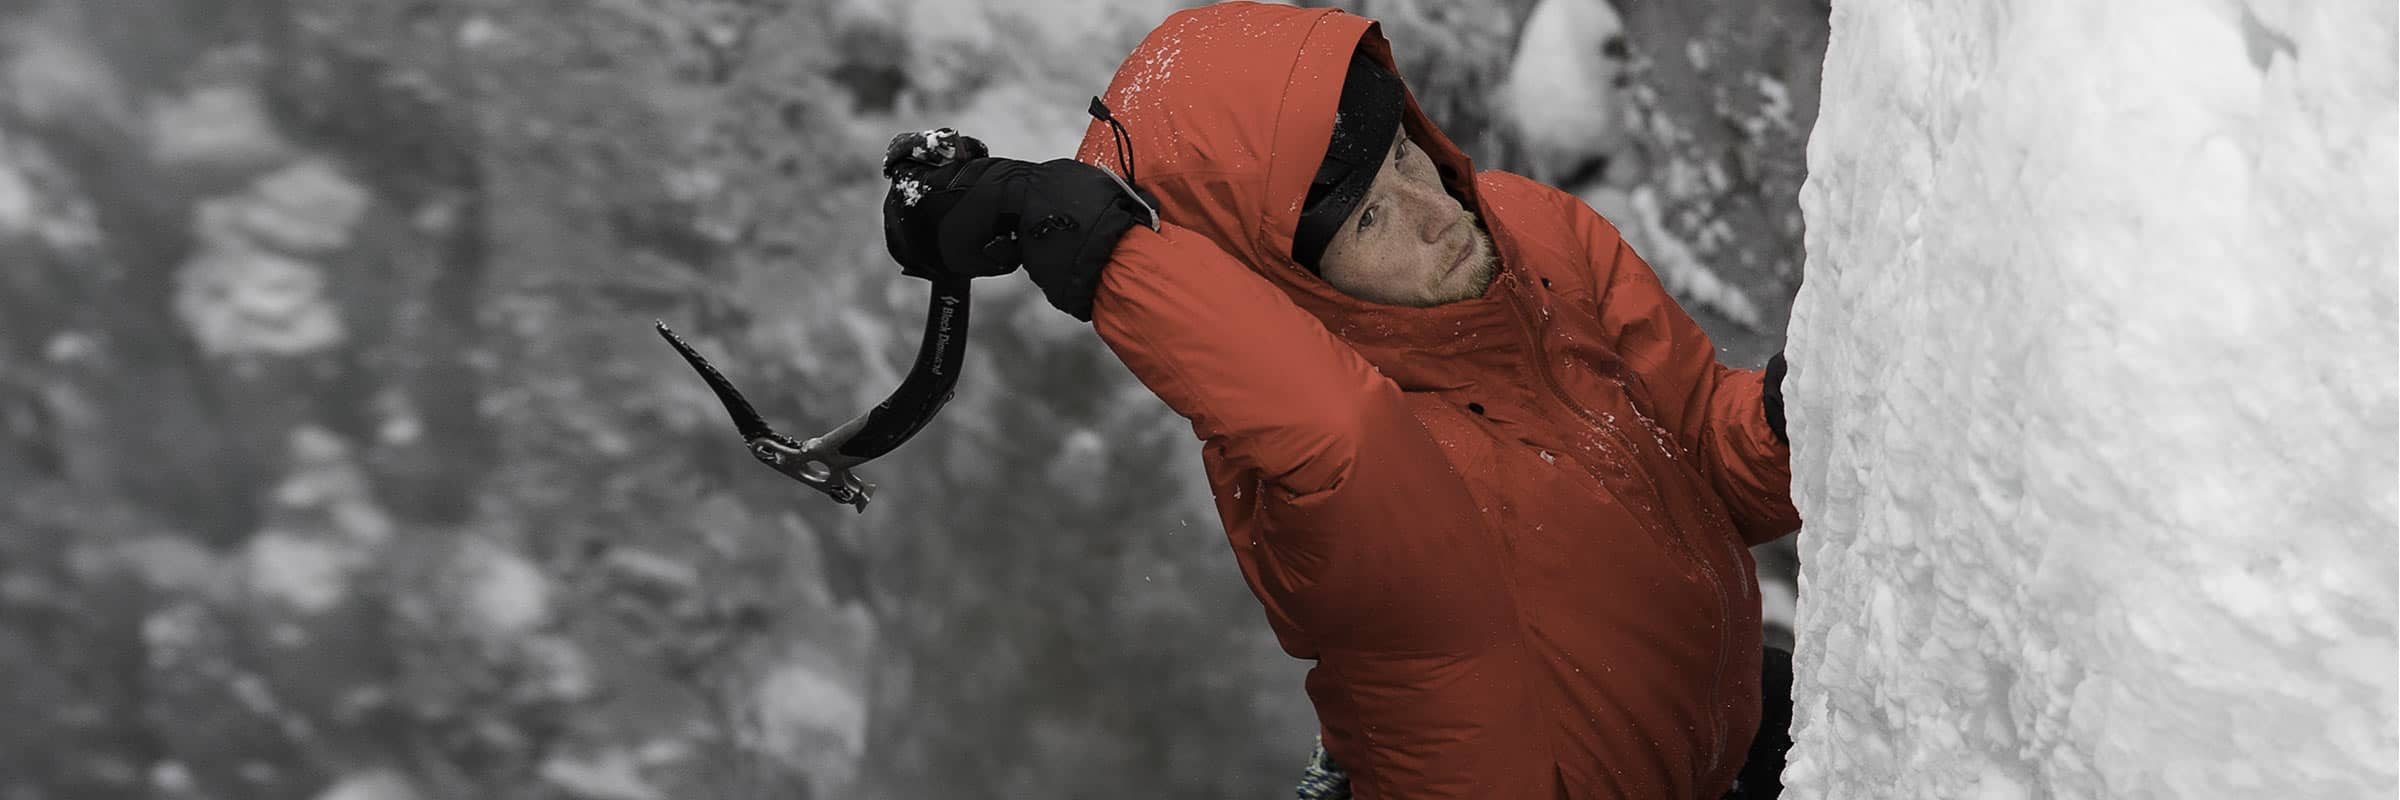 Arc'teryx, Climbing, Hiking & Trekking. Arc'teryx Winter Hiking & Alpinism Collection